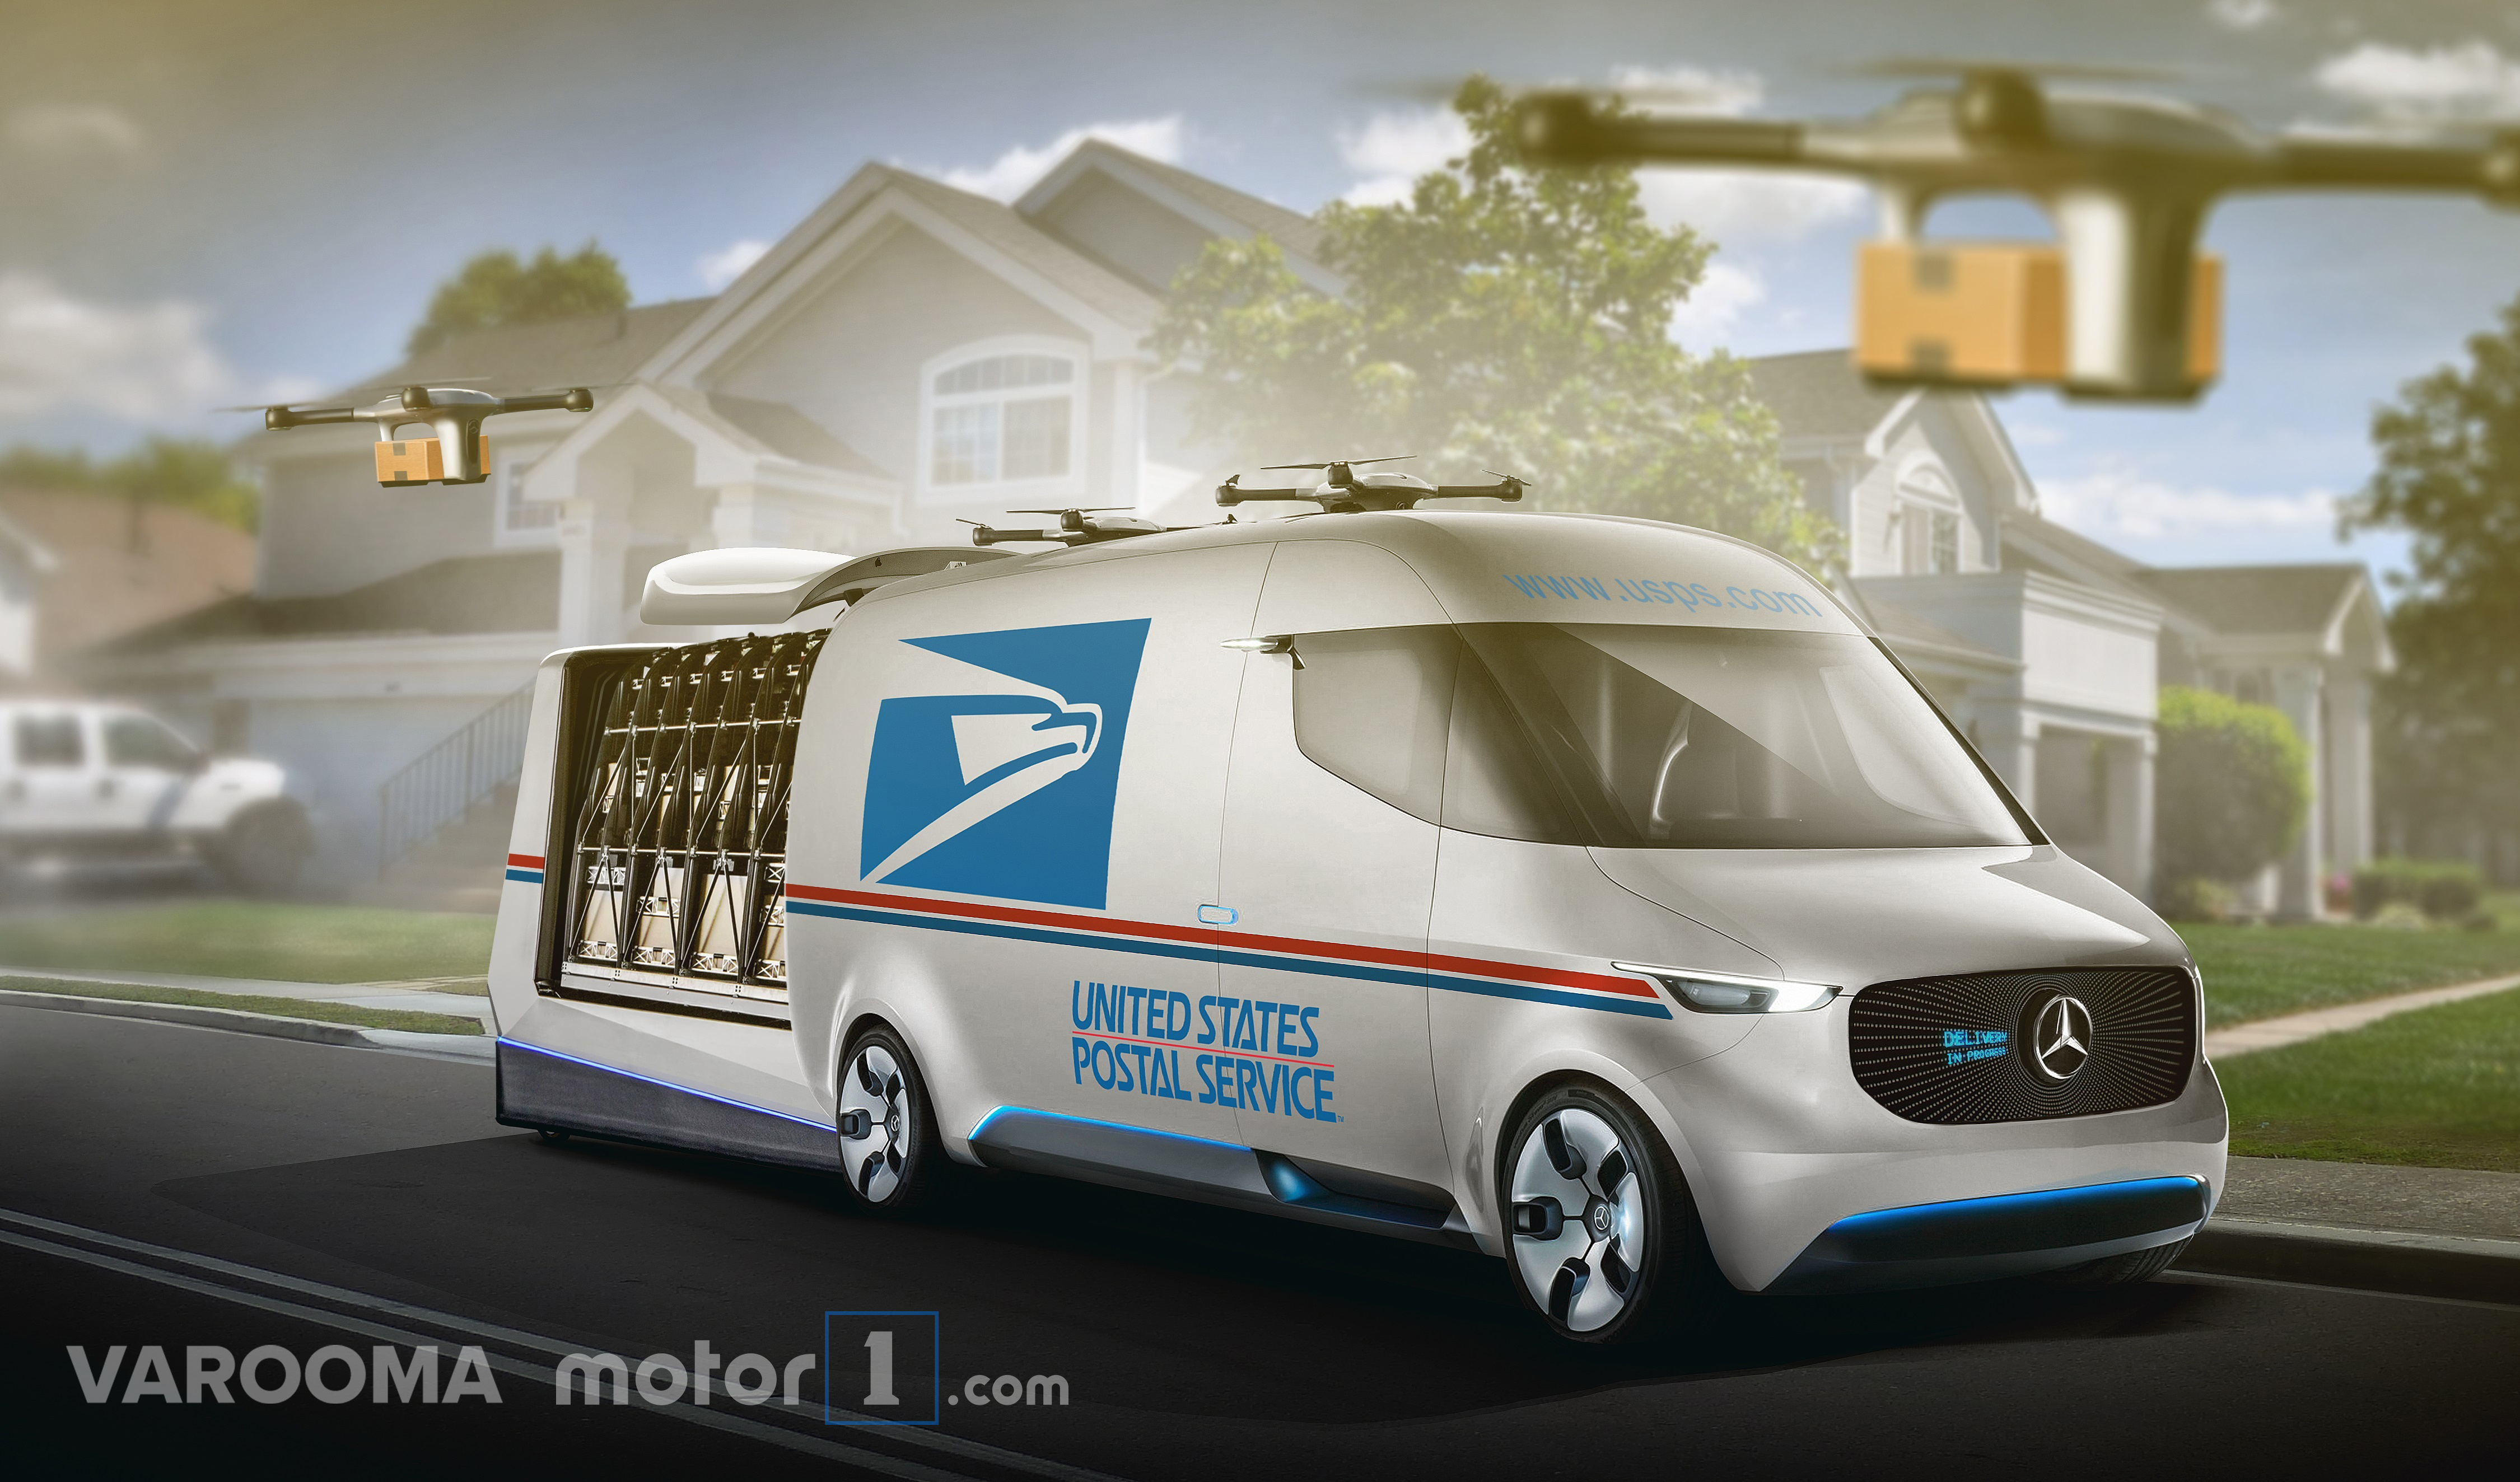 6 Next-Gen Vehicles to Replace the U.S Mail Truck - Varooma